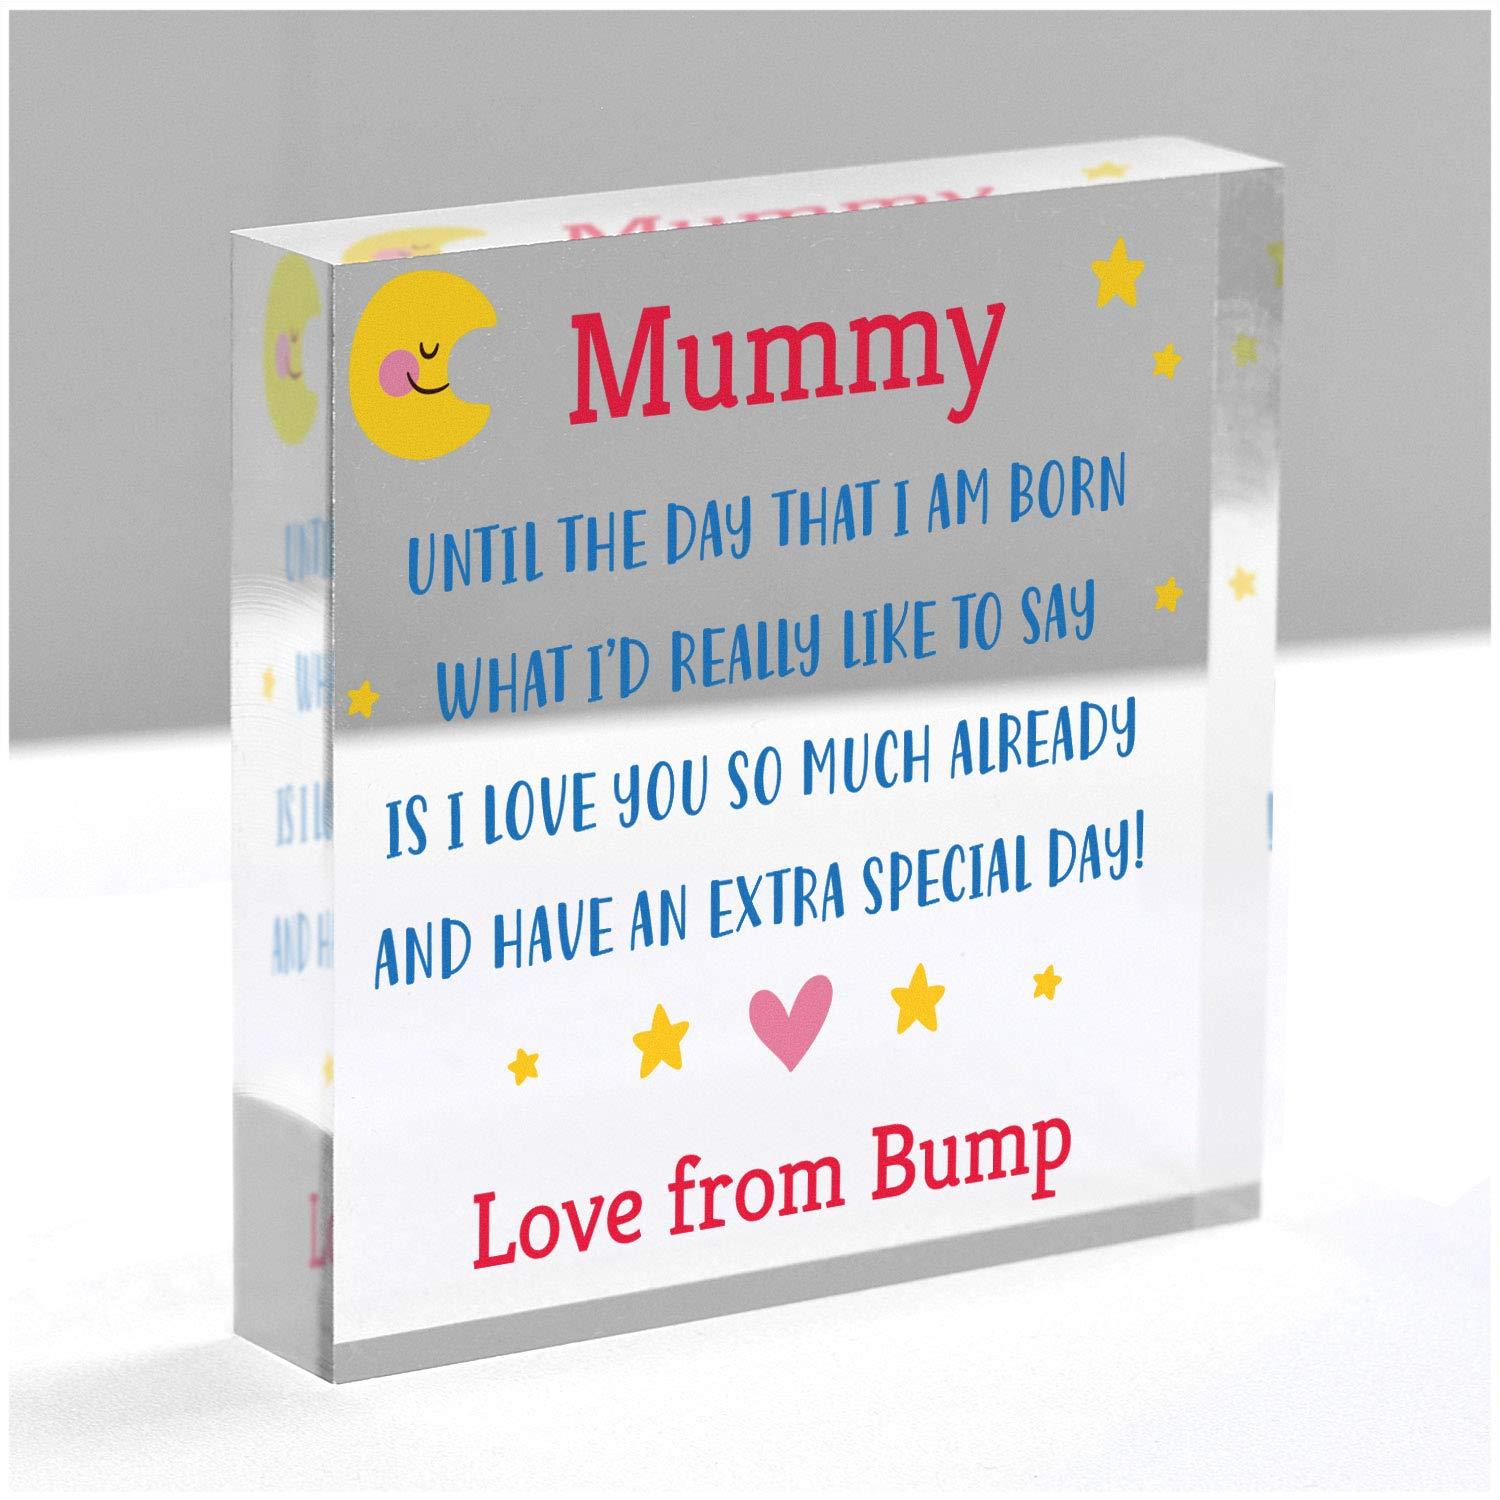 Baby Shower Mummy I Love You Gifts From Bump Birthday Christmas Gifts From The Bump Mothers Day Gifts From Bump With Grey Bag First Time Mummy Daddy Gifts PERSONALISED Gifts From The Bump